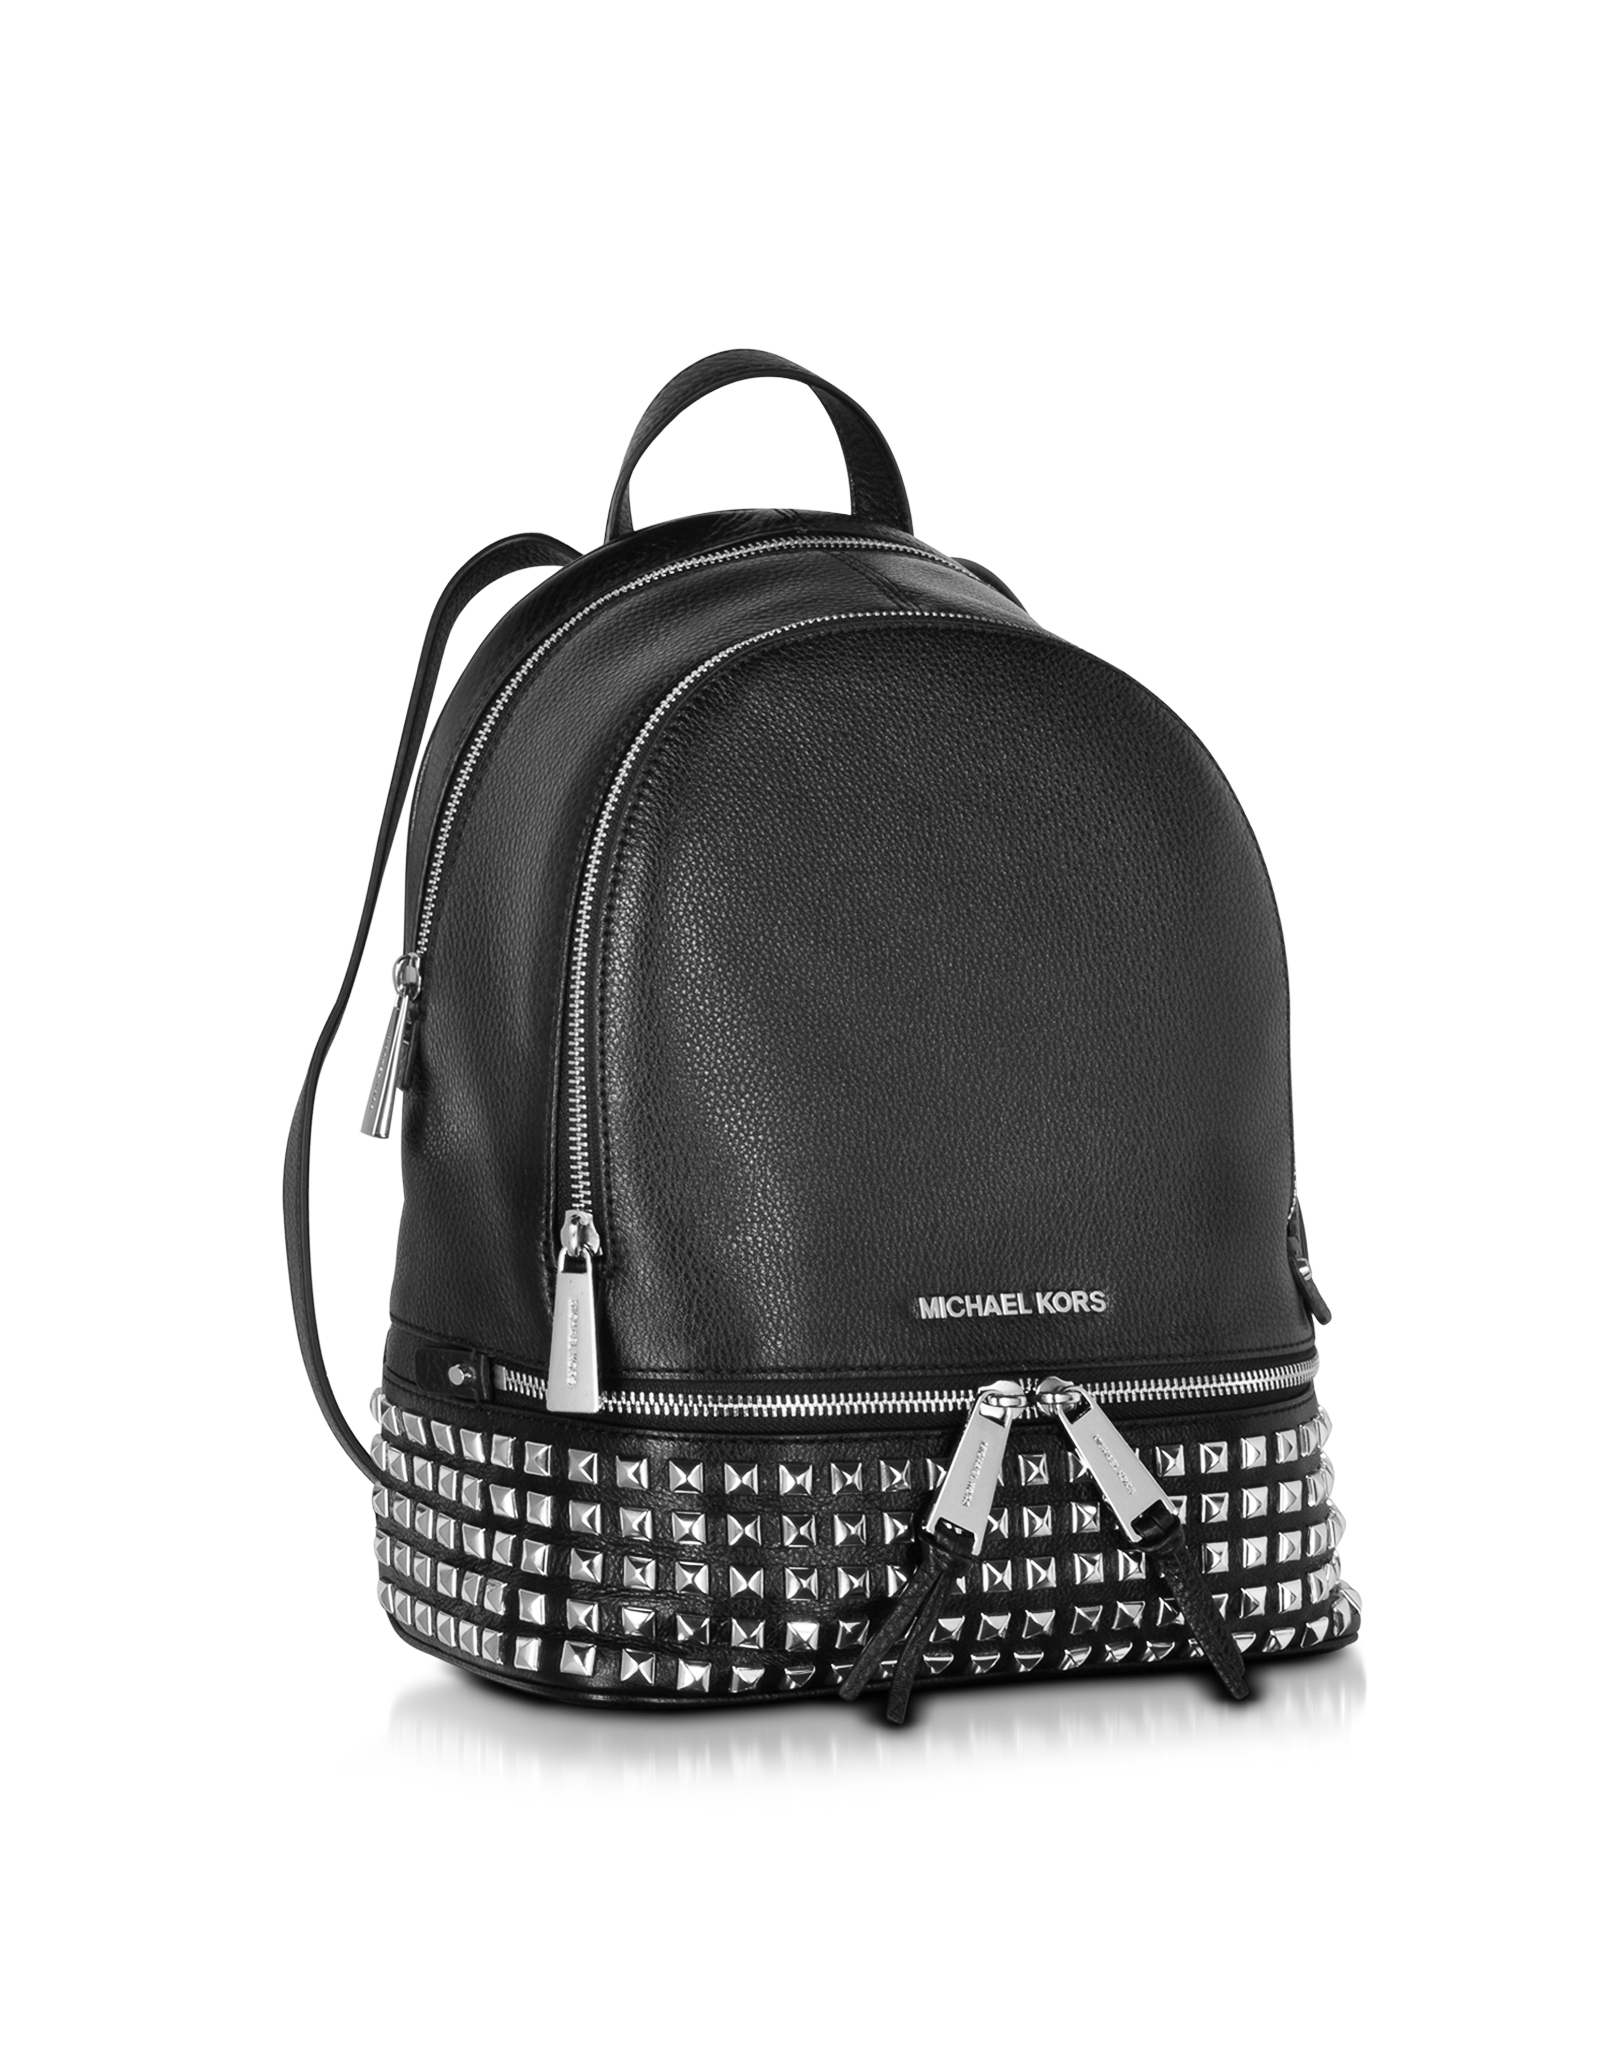 Michael kors Rhea Zip Small Studded Leather Backpack in Metallic ...